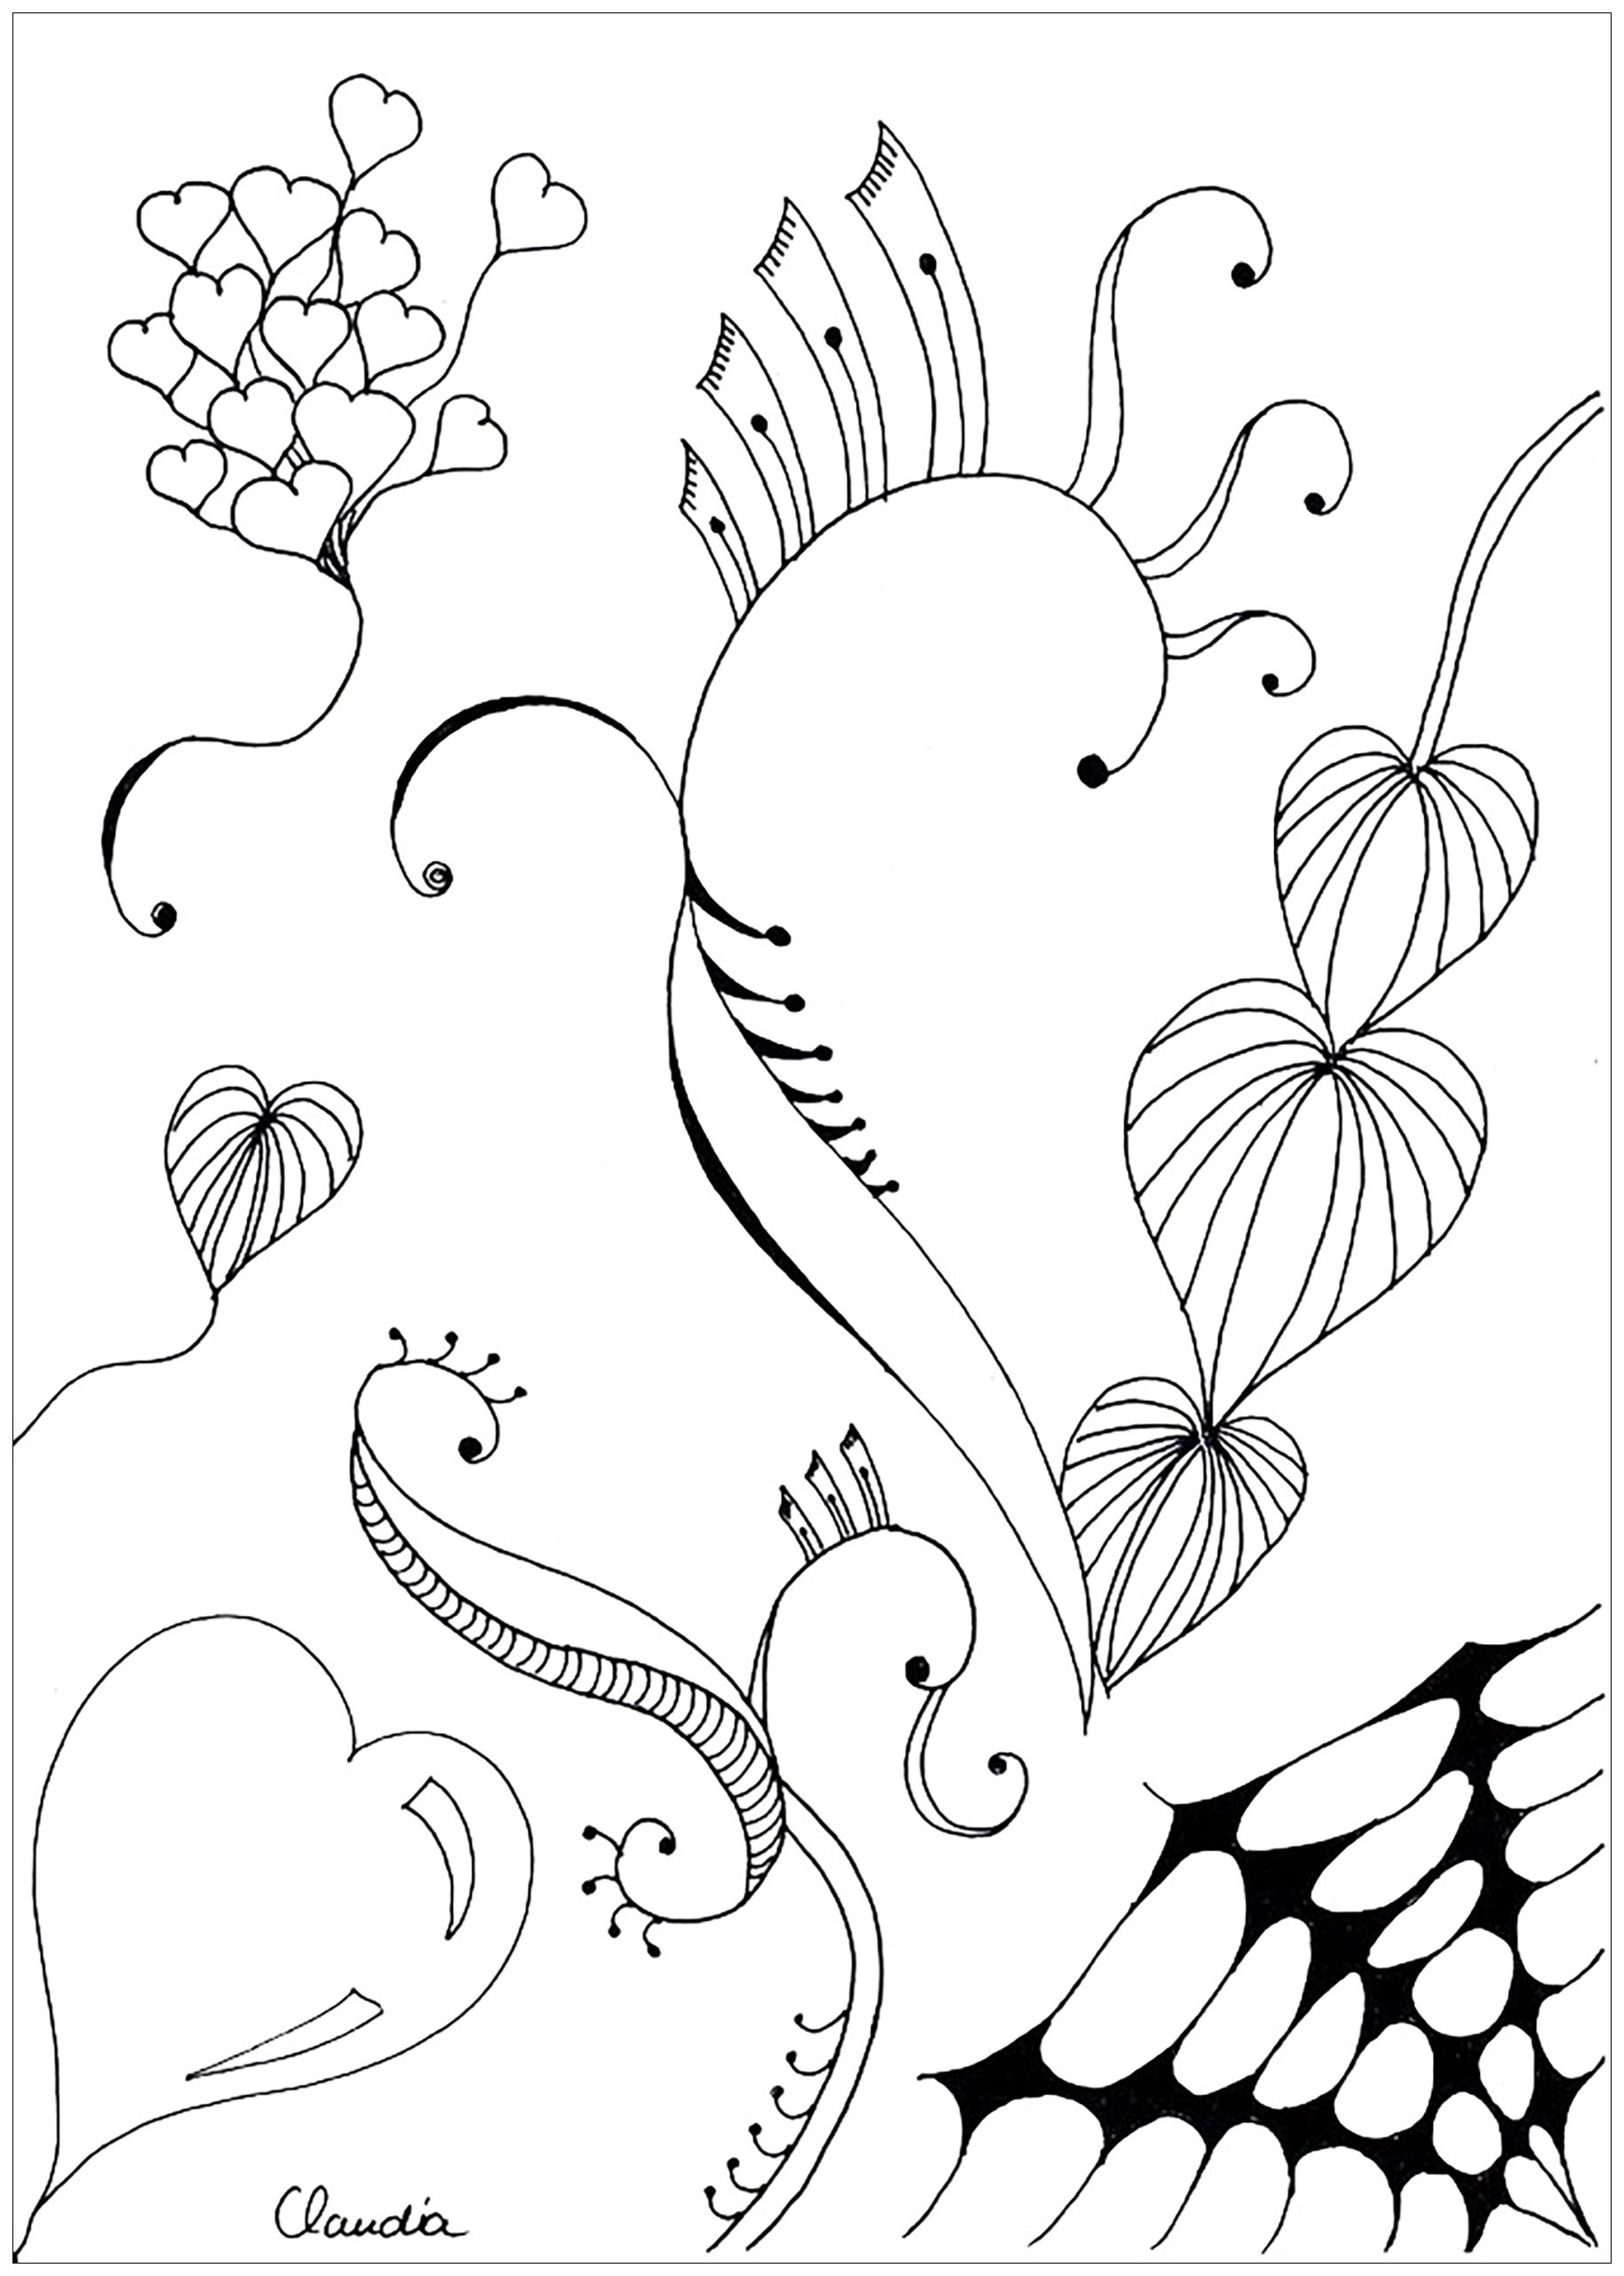 coloring book for adults easy large print adult coloring book 1 big beautiful easy for book adults coloring